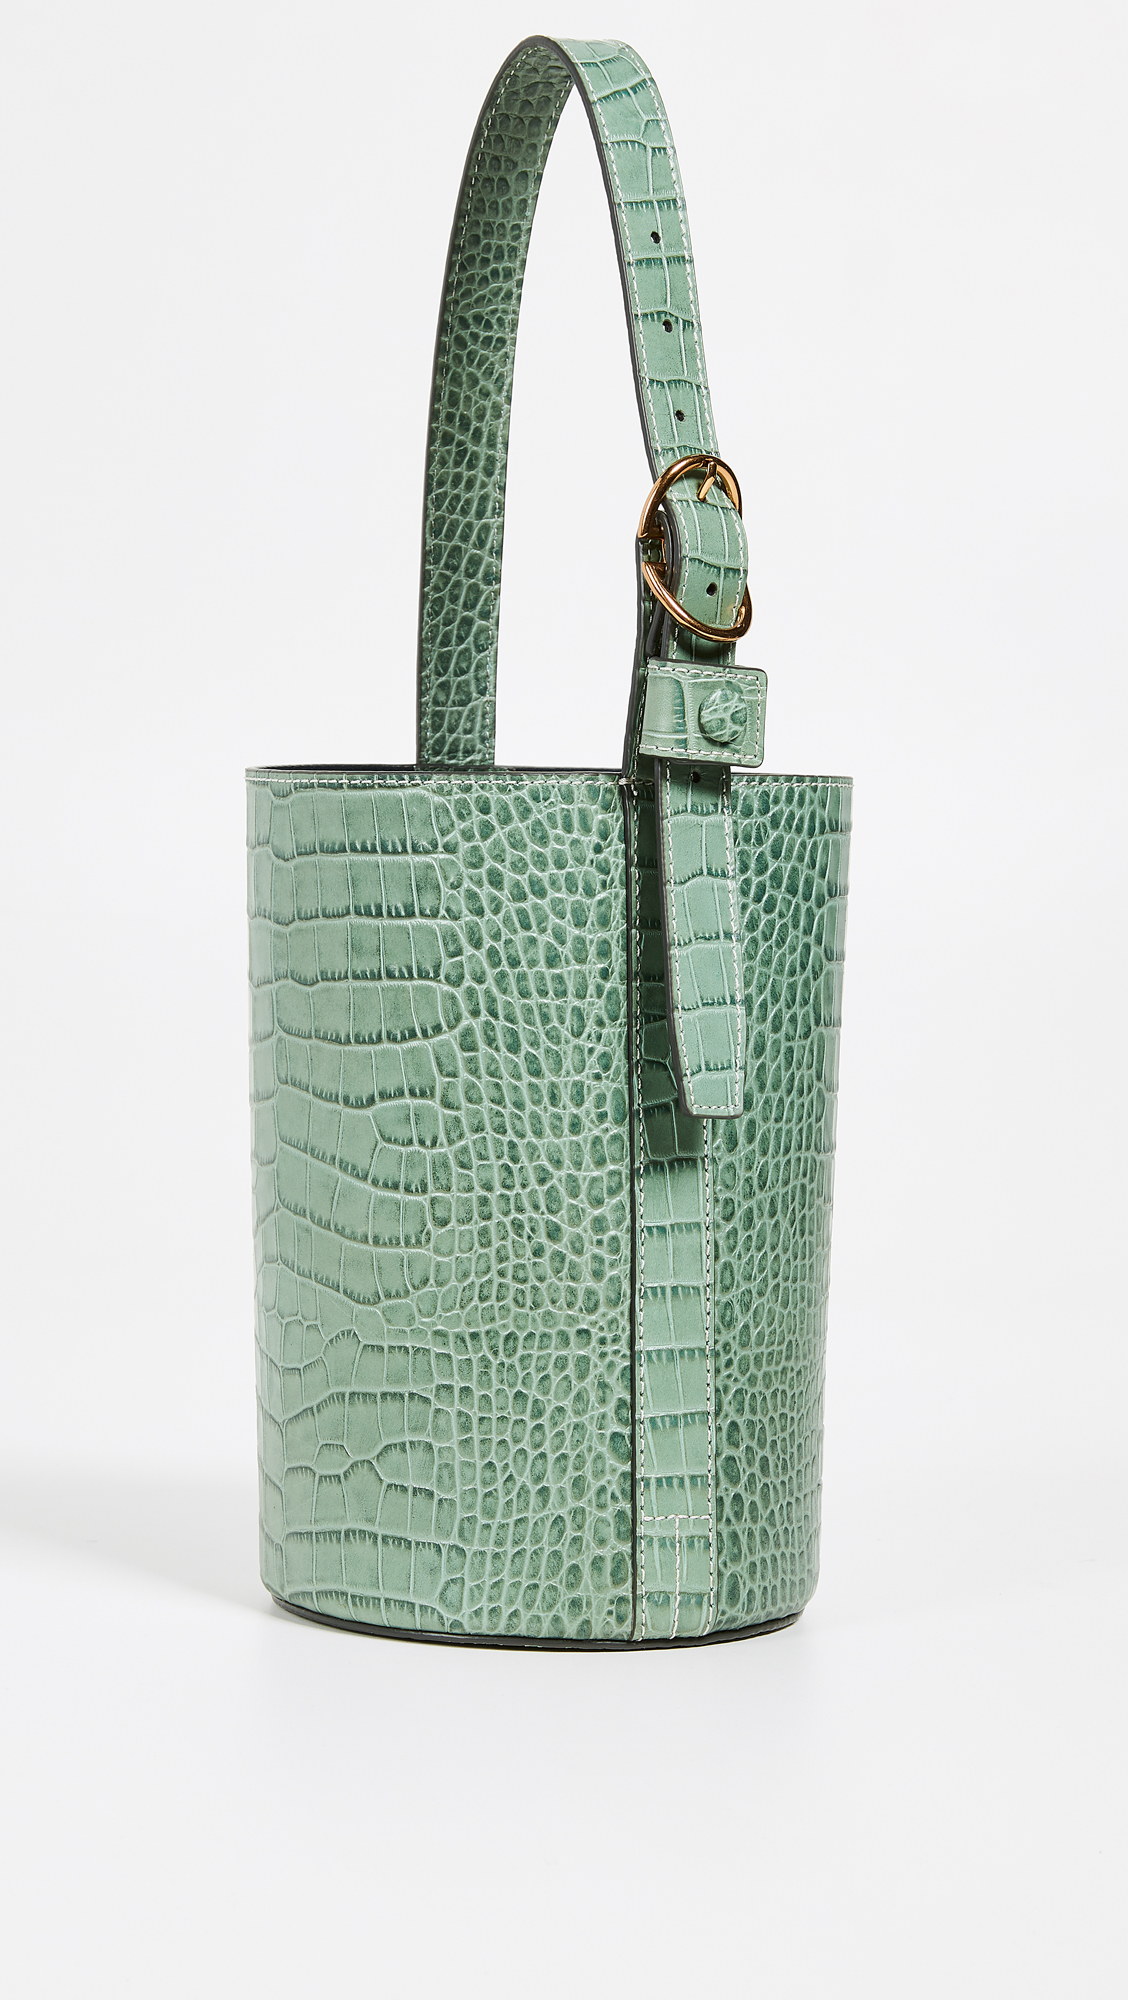 It s Official: We re Tossing Out Our Beaded Bags For A New Handbag Trend